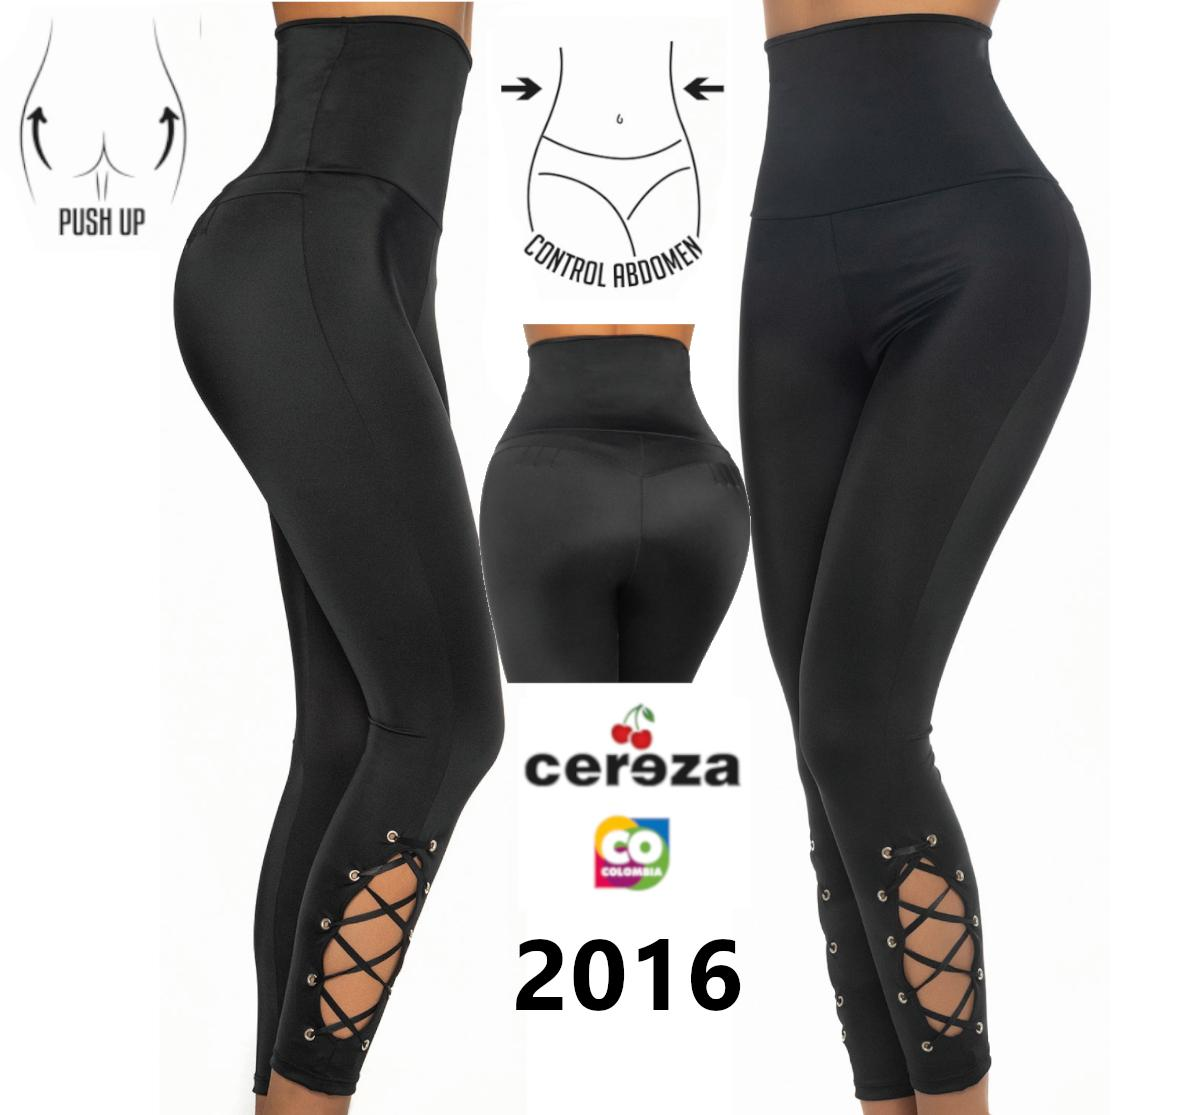 Leggings Original Colombiano de Moda